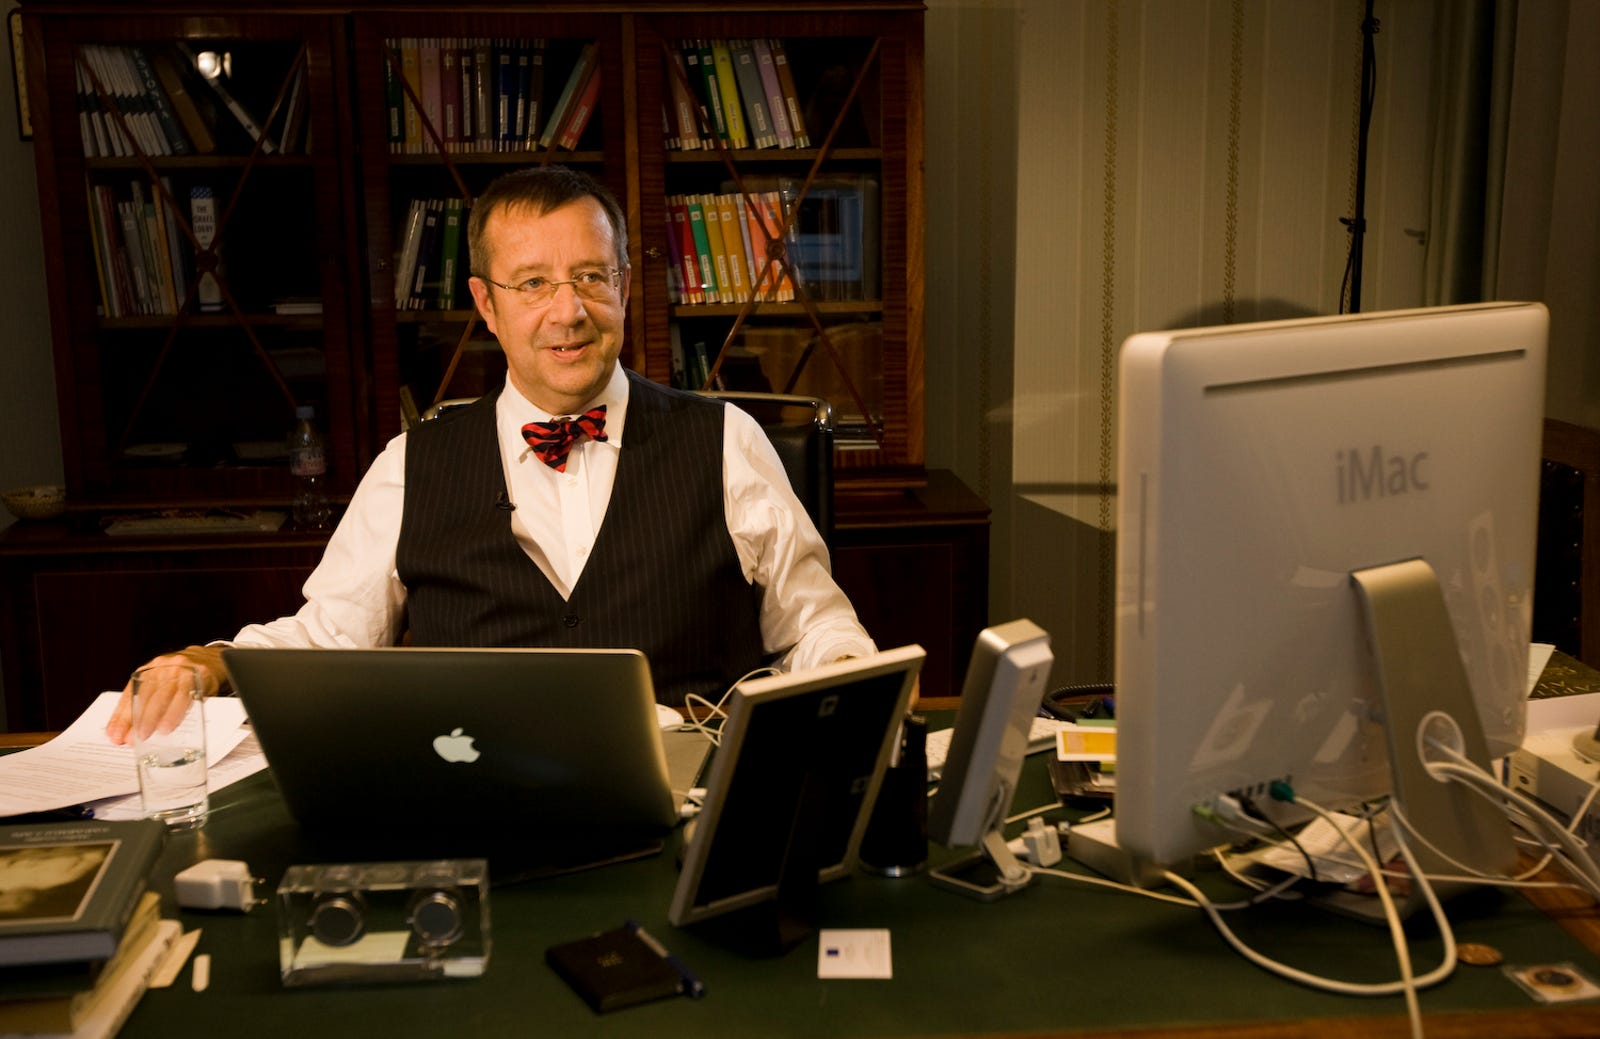 I'm Former Estonian President Toomas Hendrik Ilves, and This Is How I Work